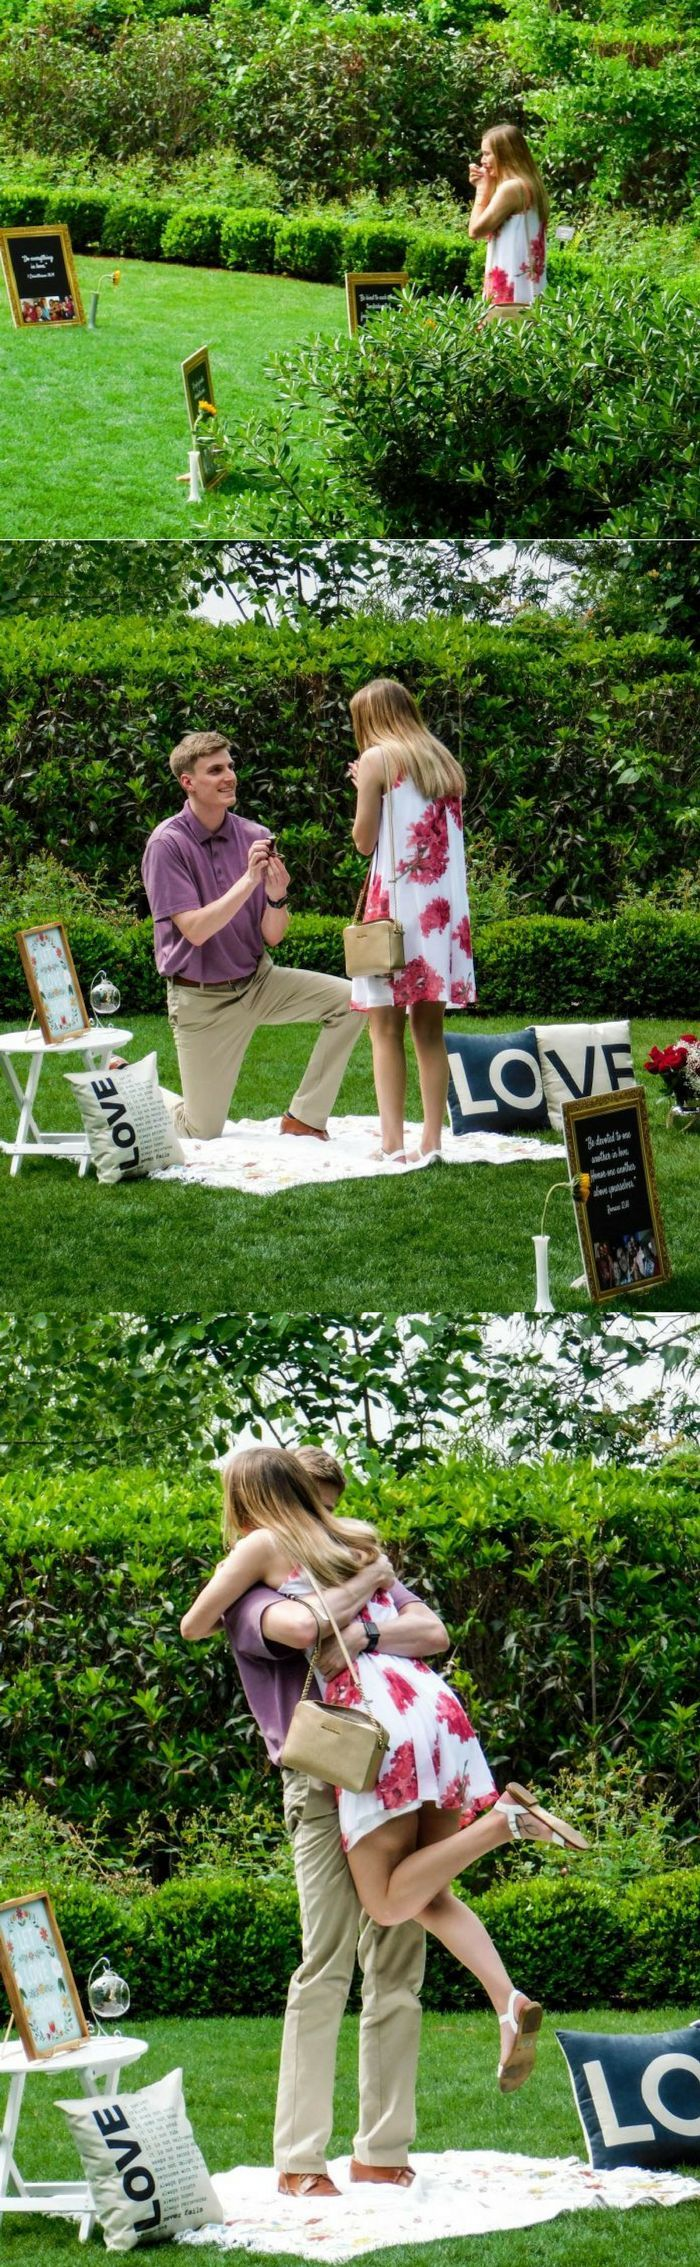 He thought of everything for this romantic #RingBySpring marriage proposal!